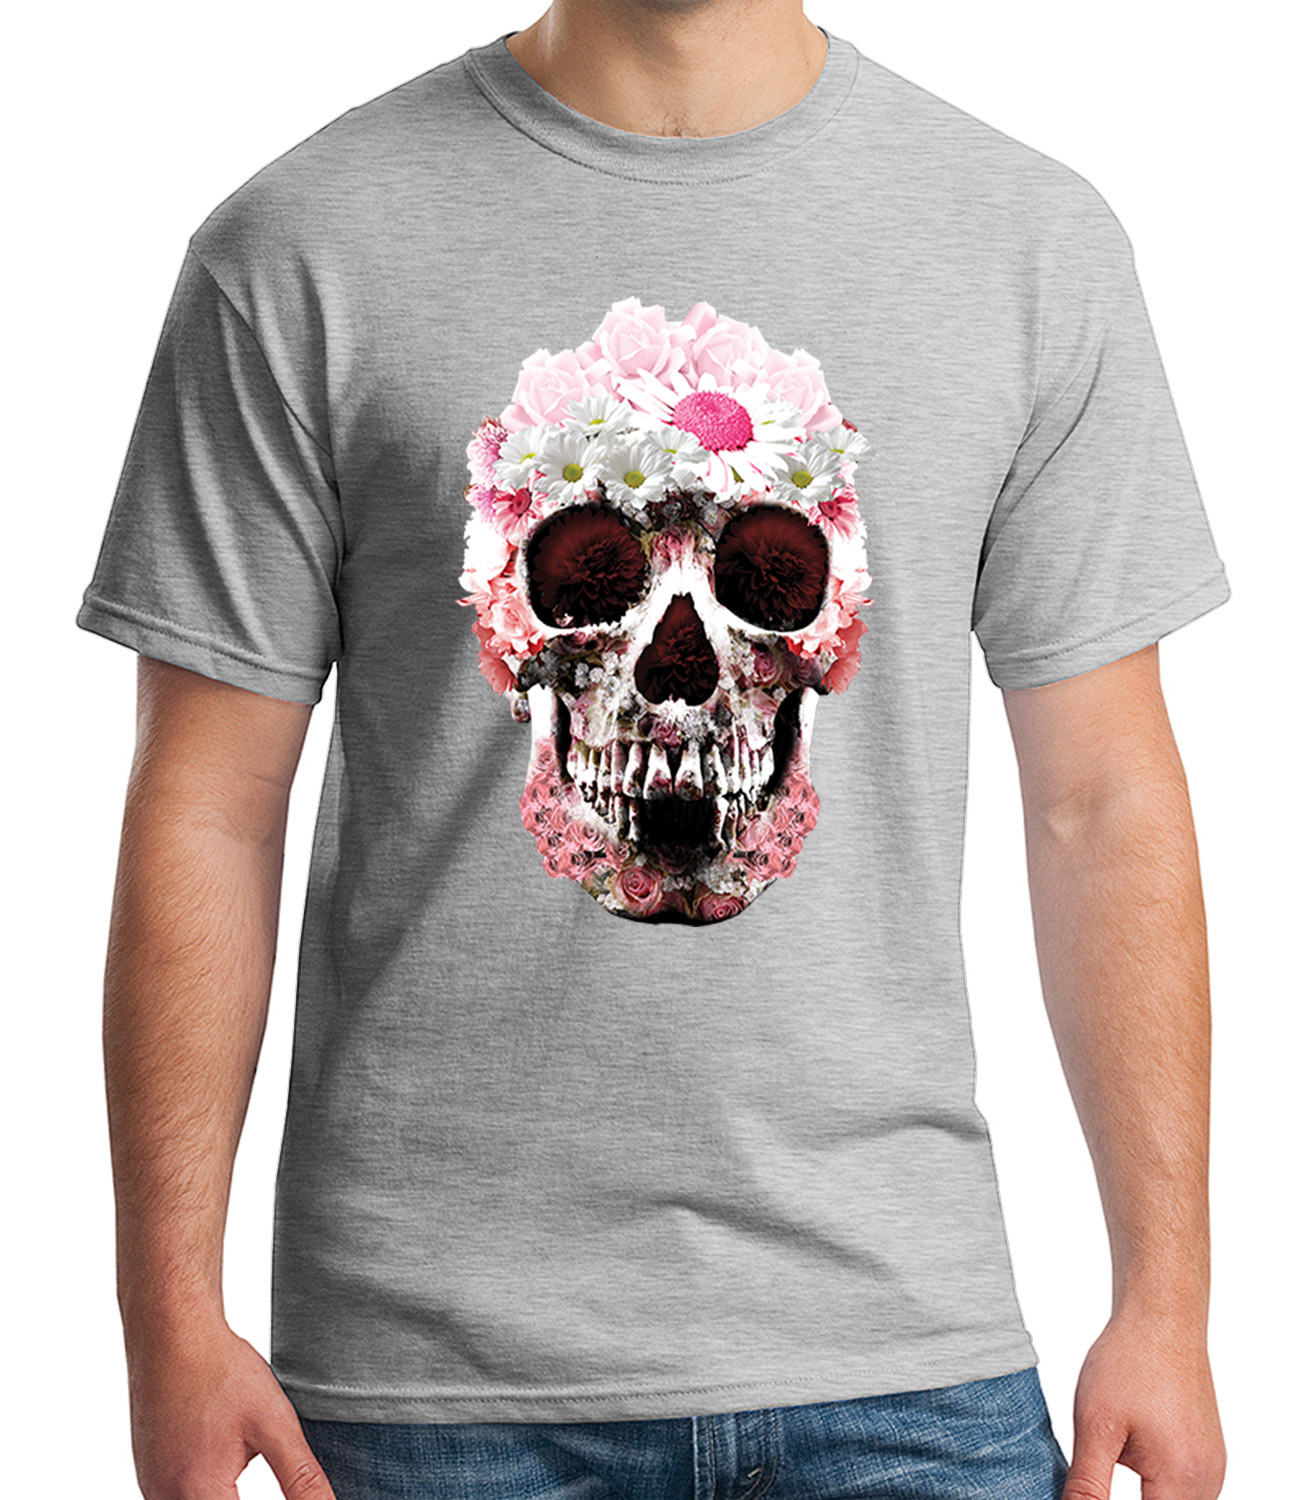 Pink Girly Skull Adult/'s T-shirt Daisy gothic graphic Tee for Men 1953C